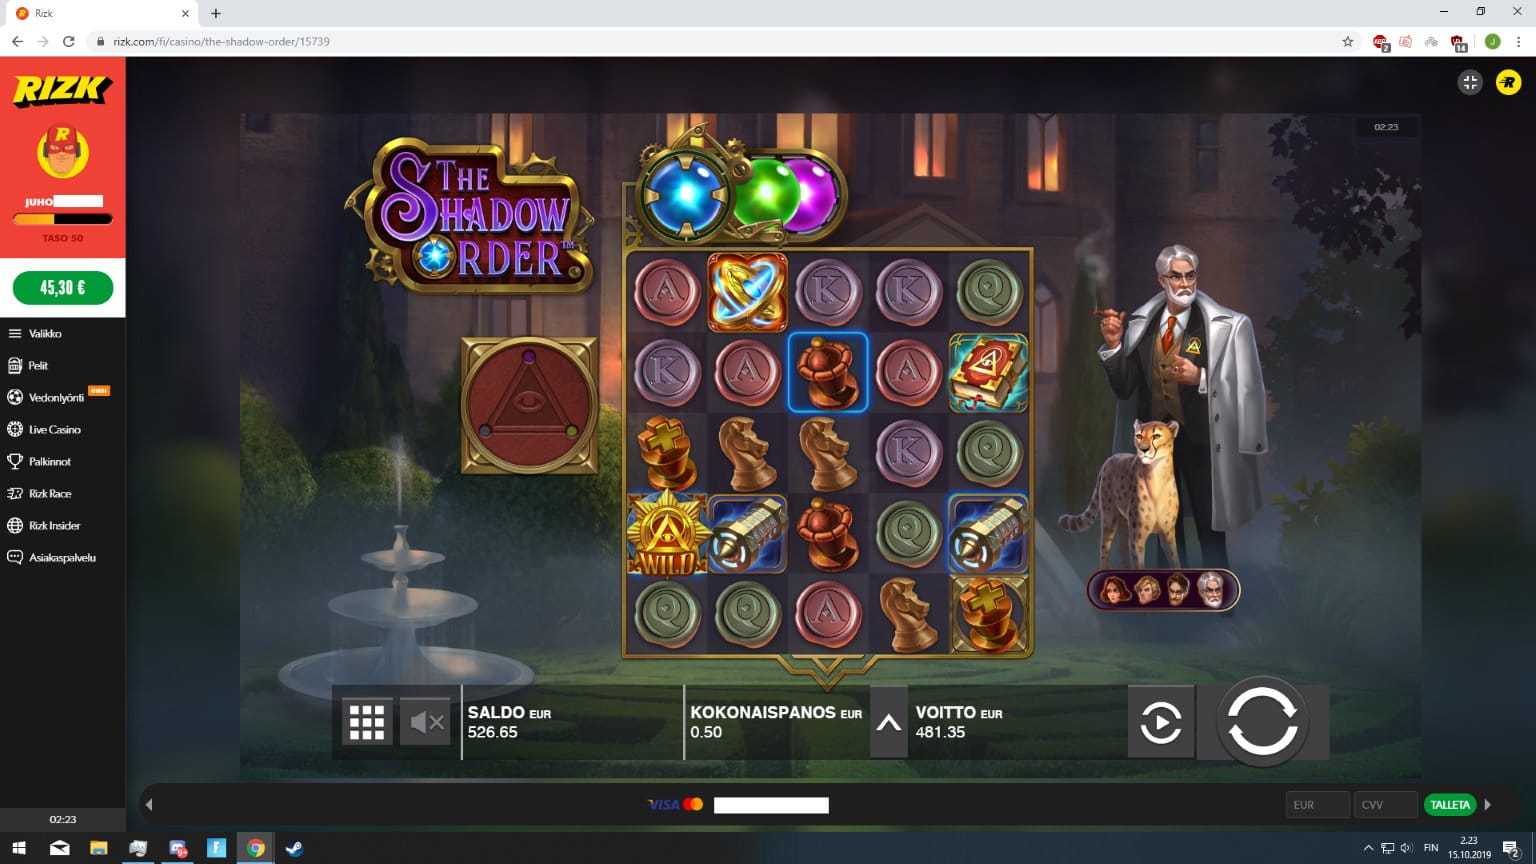 The Shadow Order slot big win picture